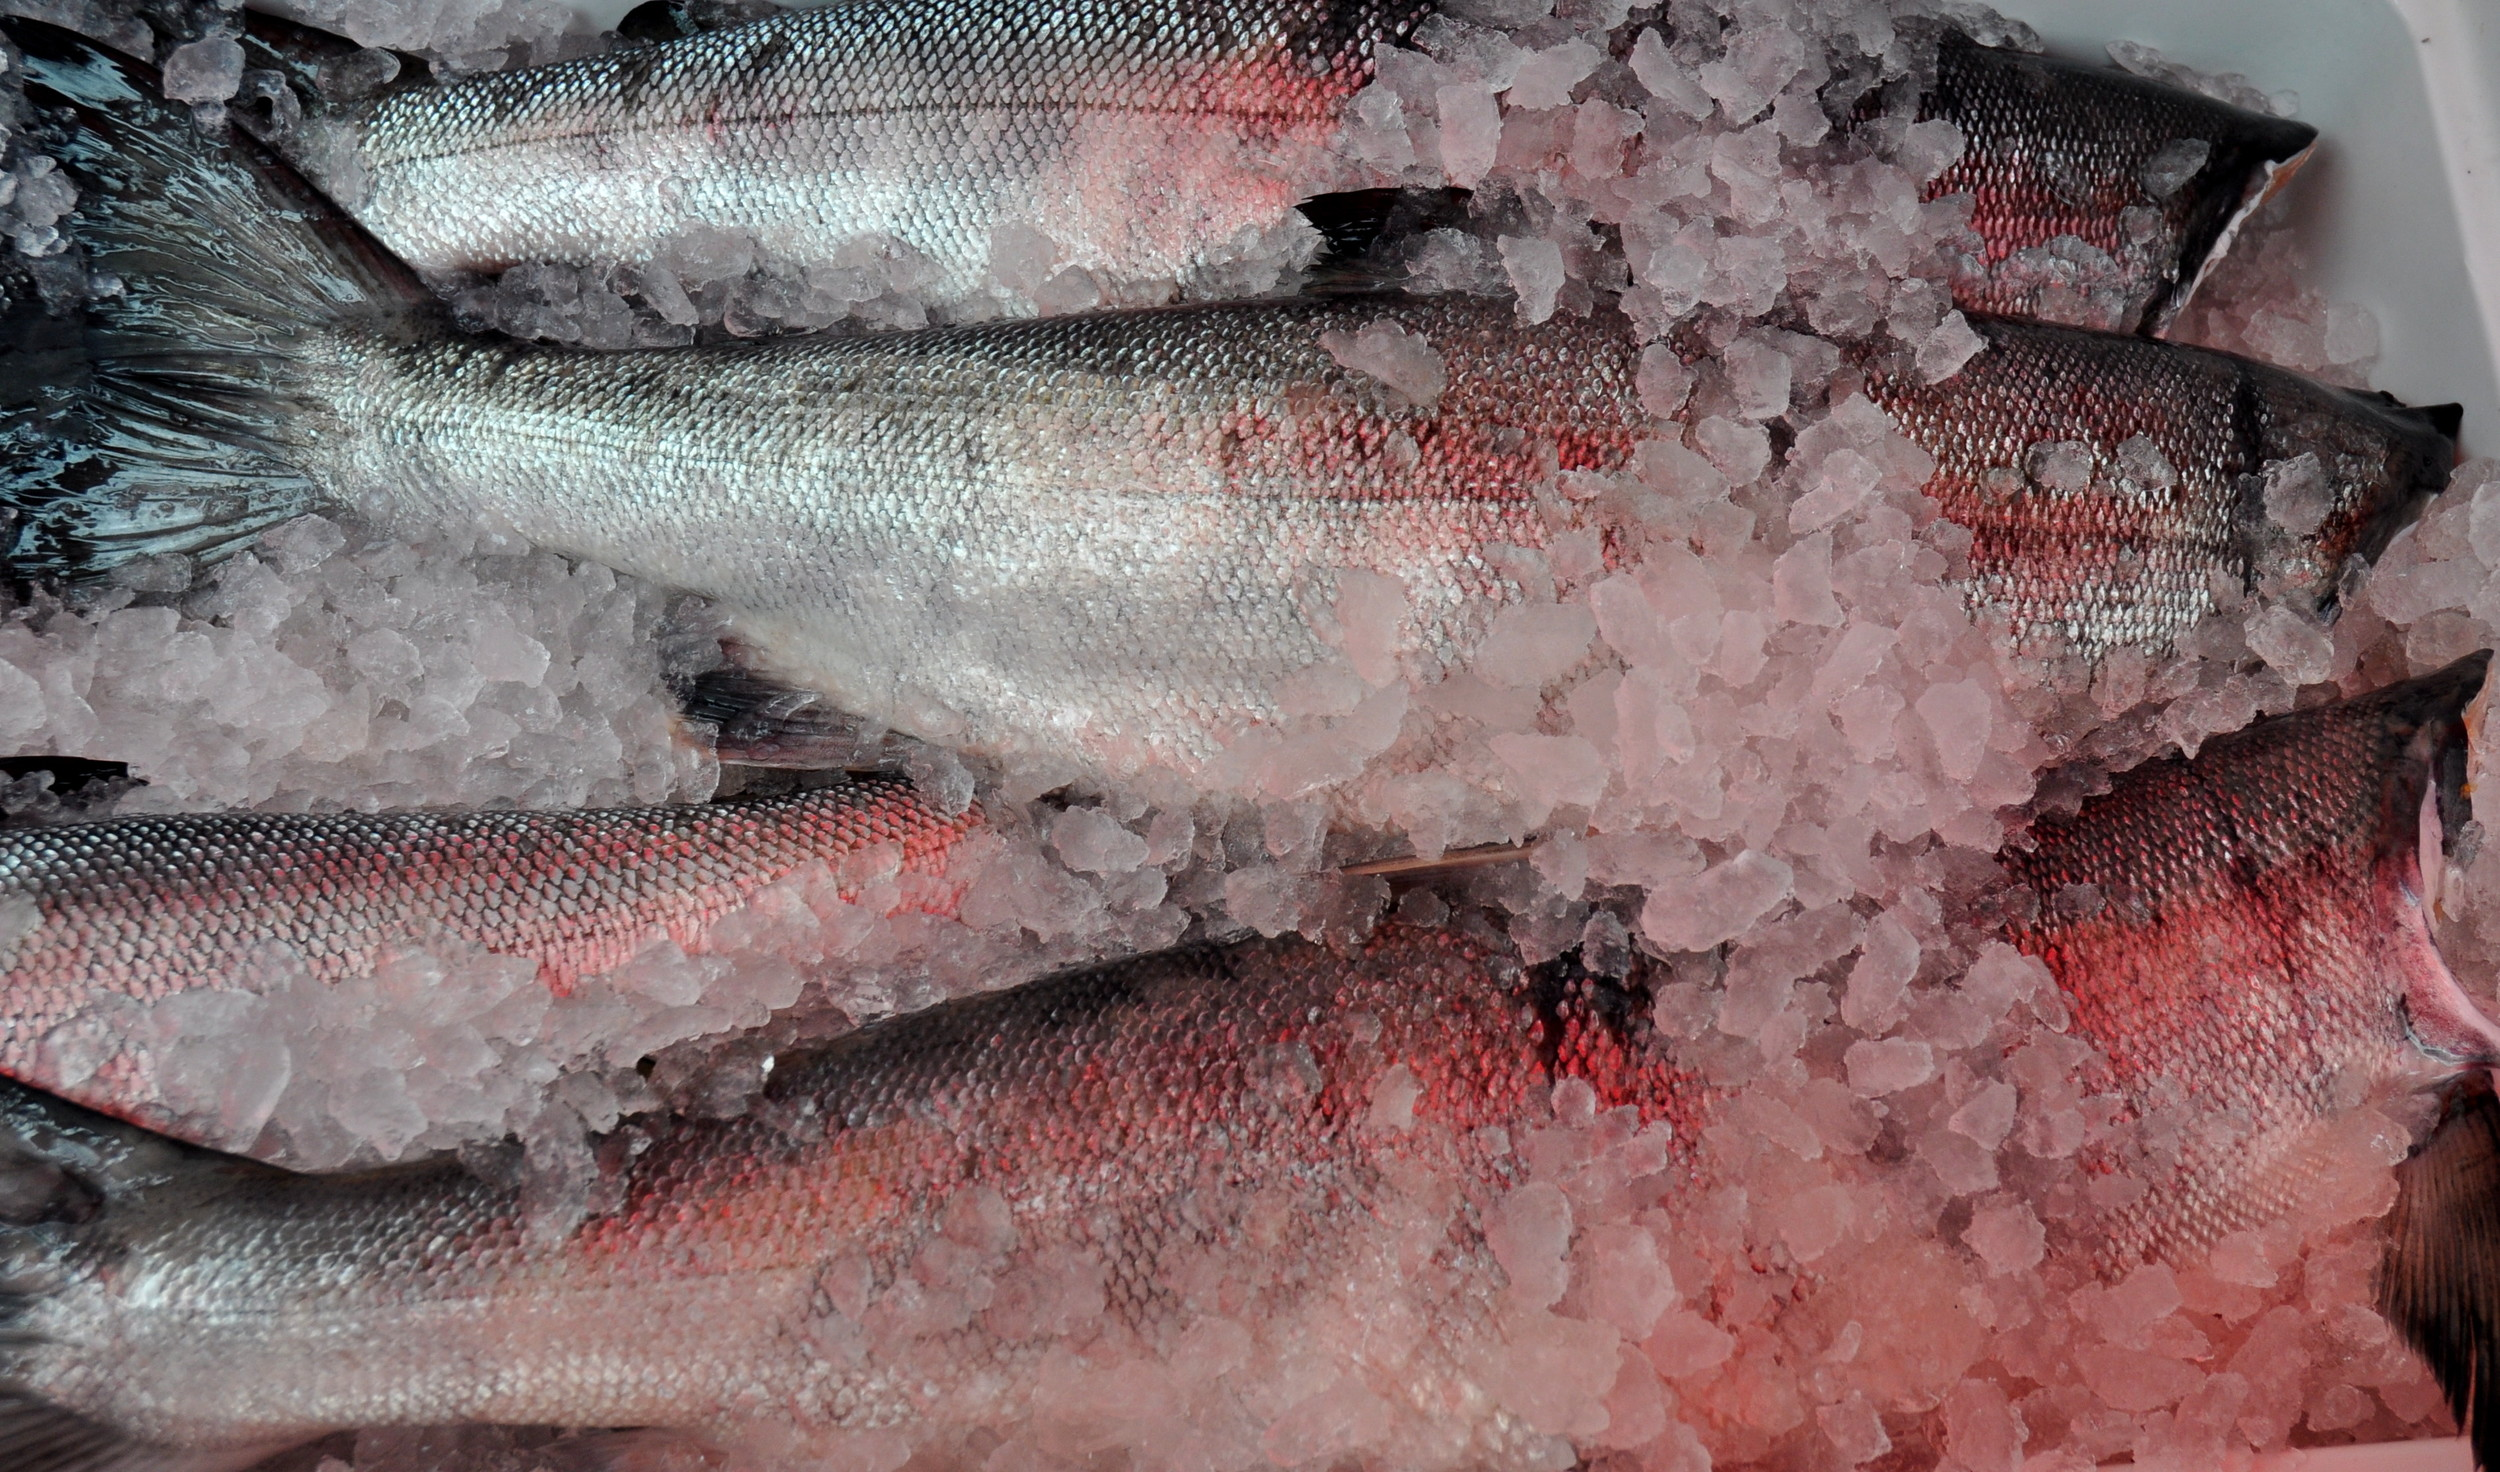 Fresh, whole, Puget Sound Keta salmon from Loki Fish. Photo copyright 2012 by Zachary D. Lyons.